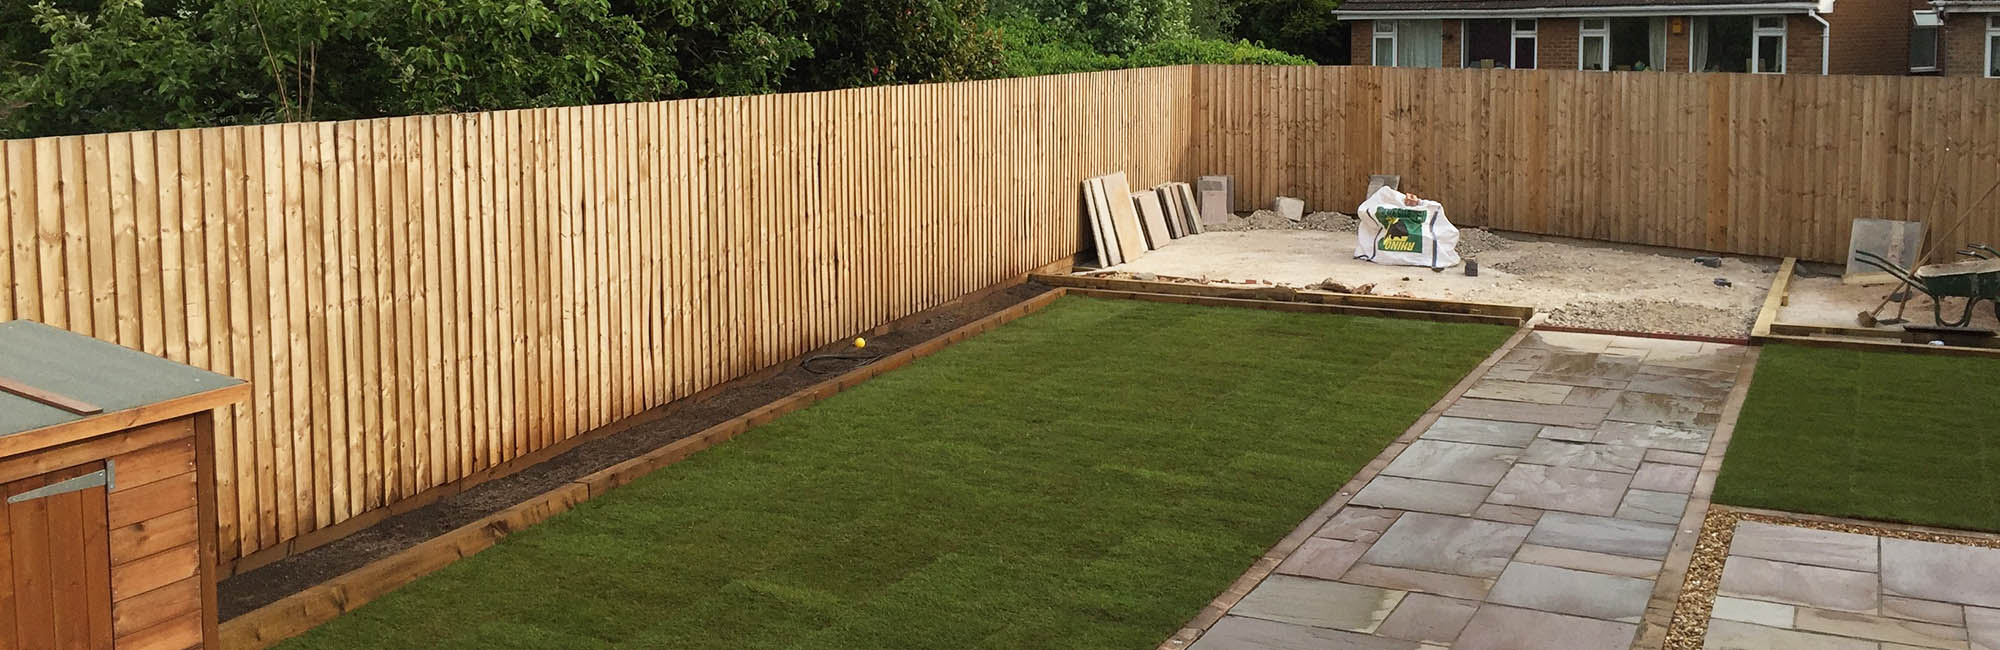 Bespoke Fencing & Decking Services